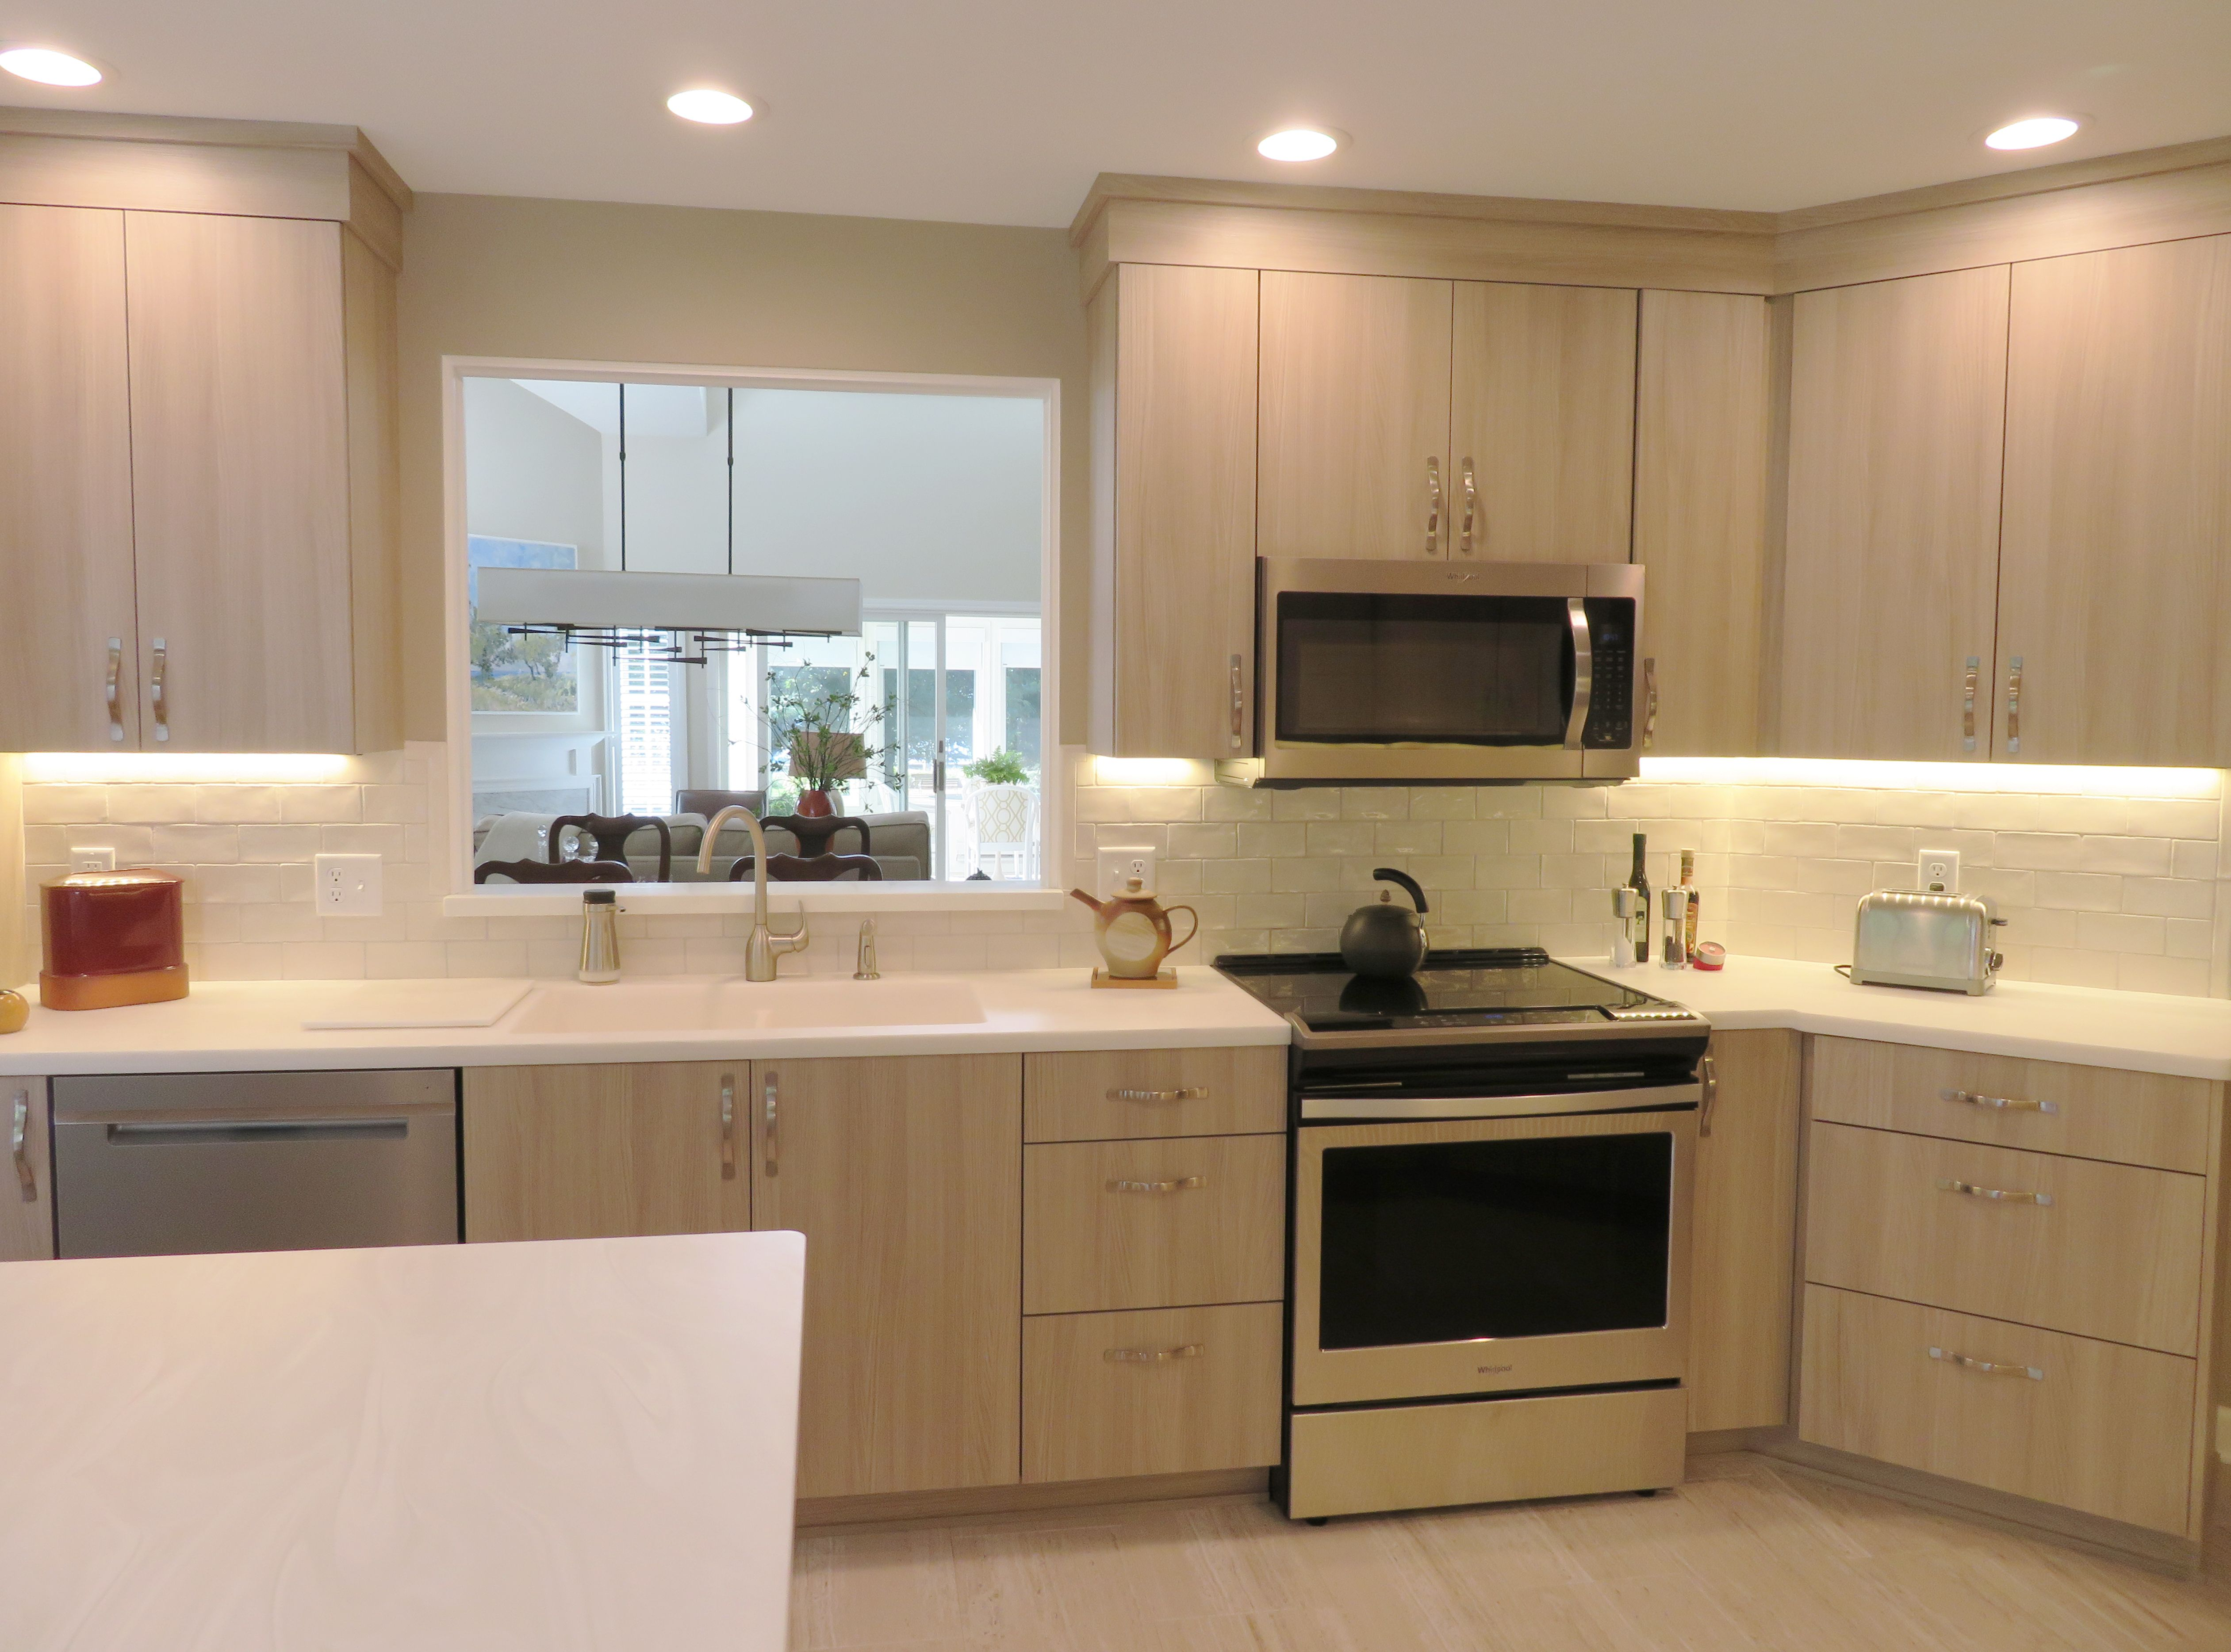 Ultracraft Thermofoil Cabinetry Corion Countertops Lvt Flooring Kitchen Design Kitchen Layout Corion Countertops